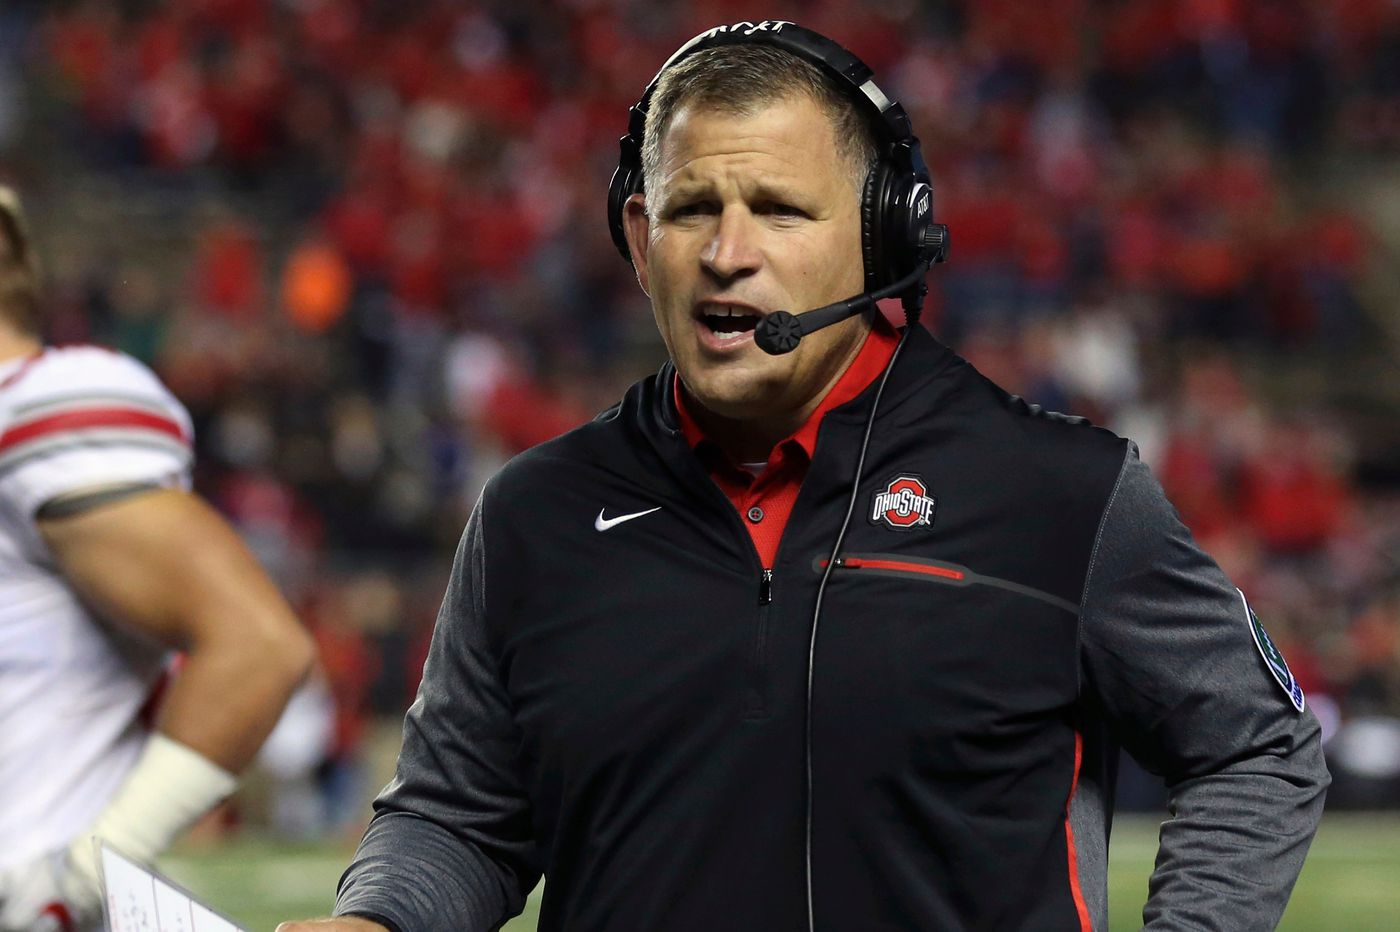 Sources: Greg Schiano, Butch Jones, Alabama's Josh Gattis interested in Temple football head coach job